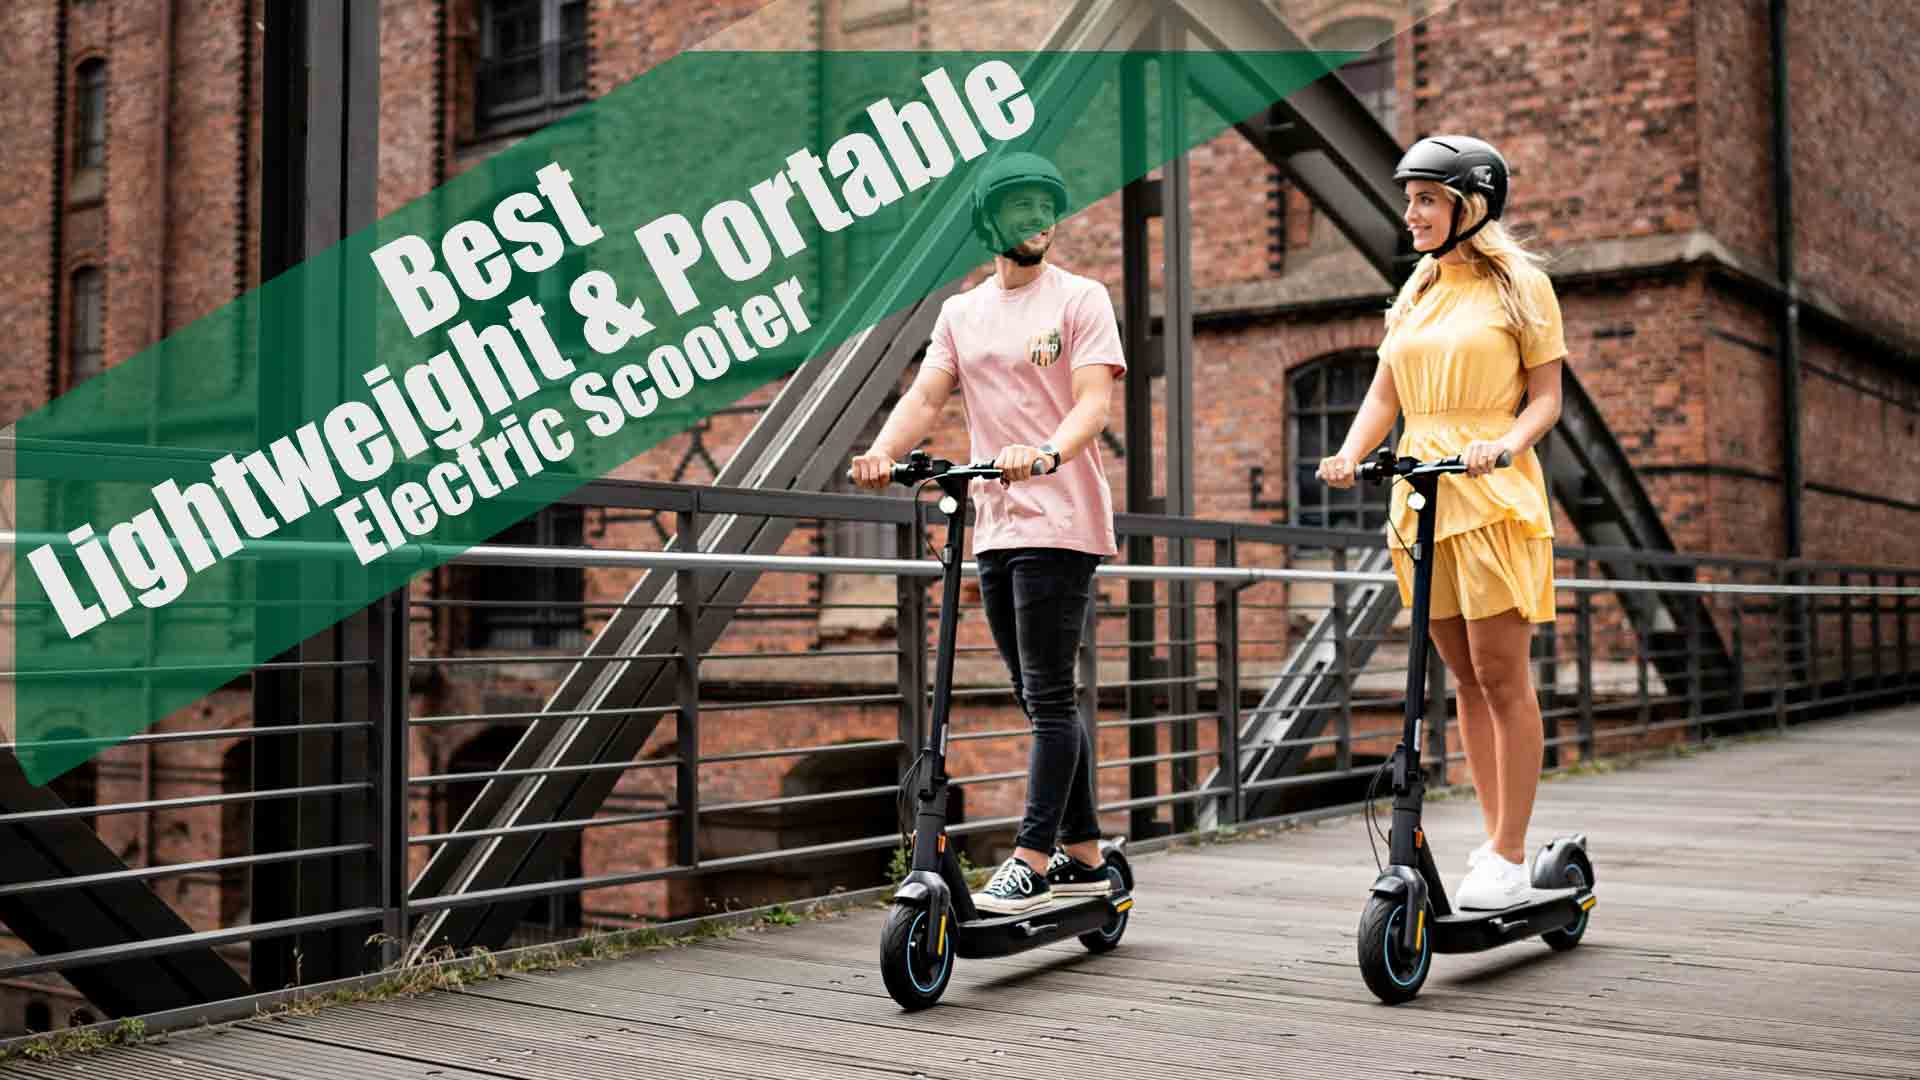 Top lightweight and portable electric scooter